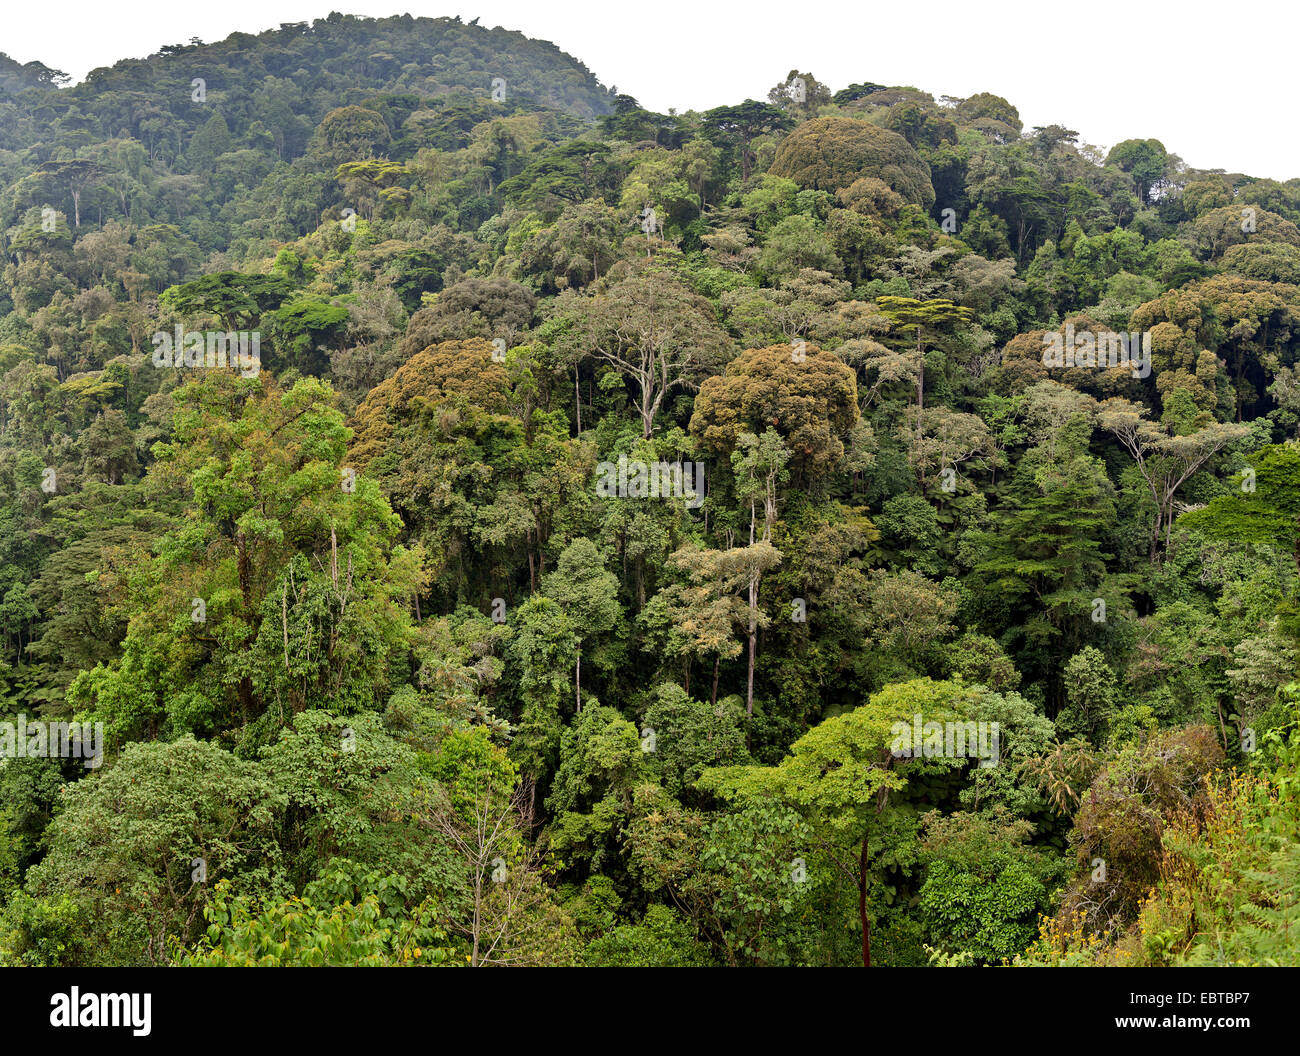 Les forêts tropicales, l'Ouganda, Bwindi Impenetrable National Park Photo Stock